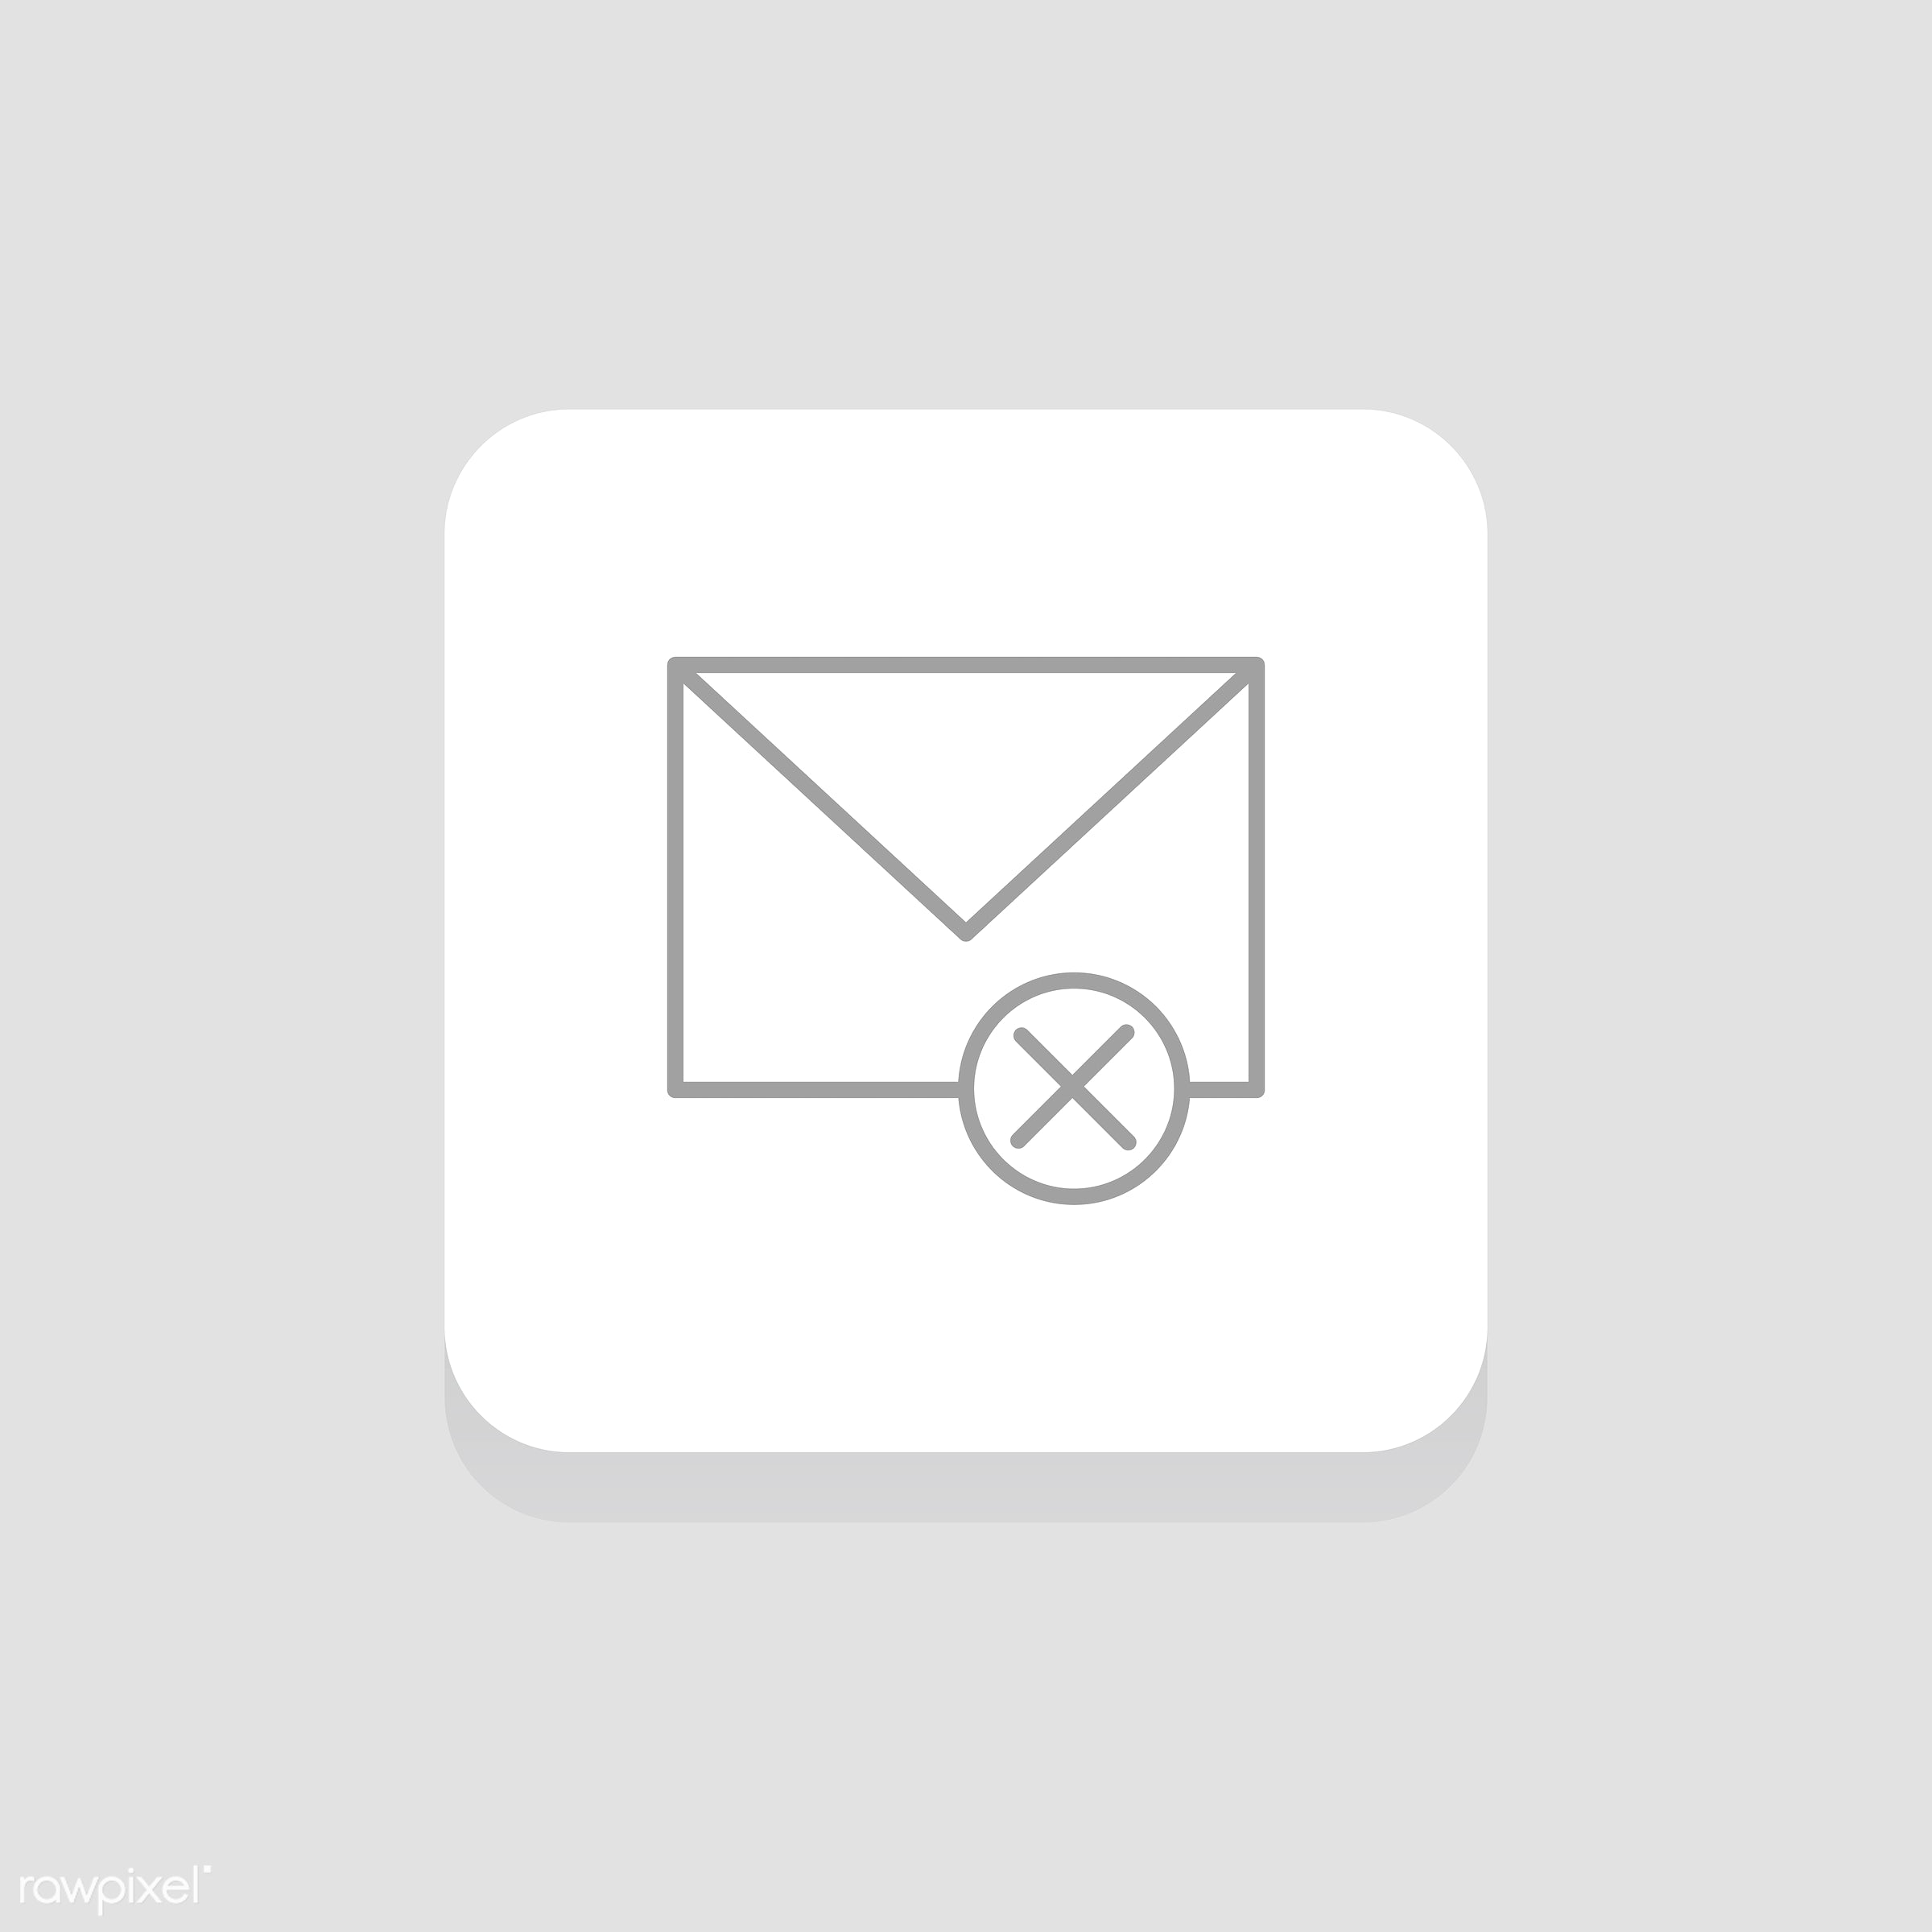 Vector of letter icon - design, flat, graphic, icon, illustration, isolated, layout, style, symbol, vector, web, website,...